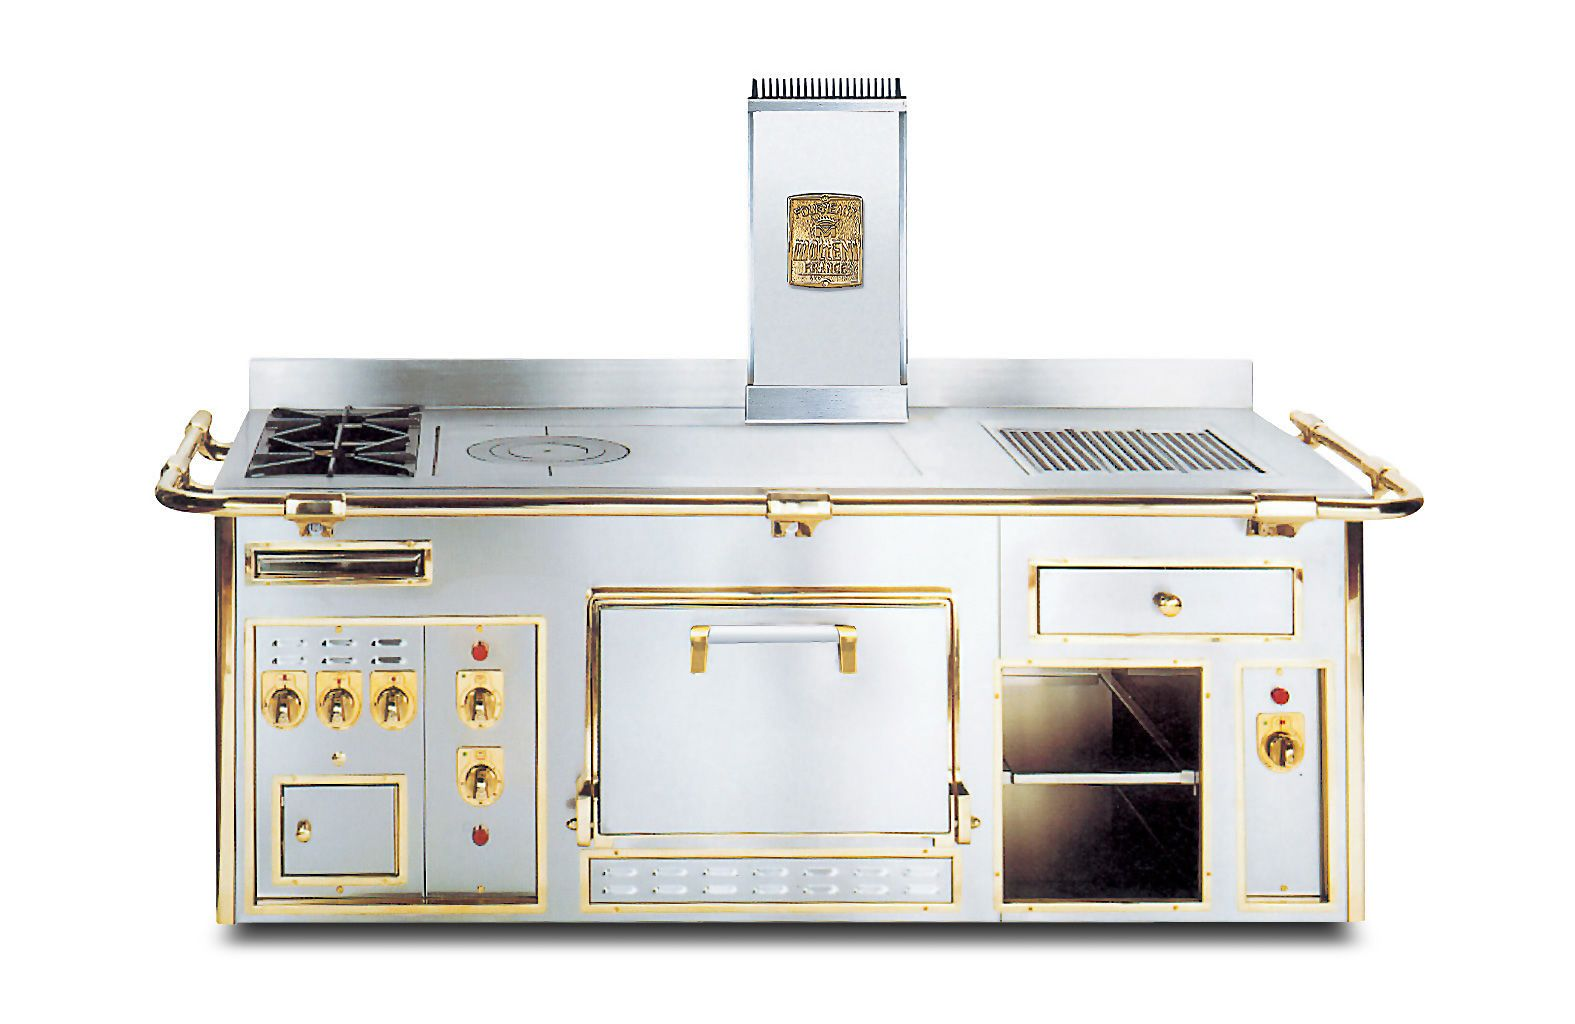 Cuisiniere Gaz Ou Electrique pin on kitchens